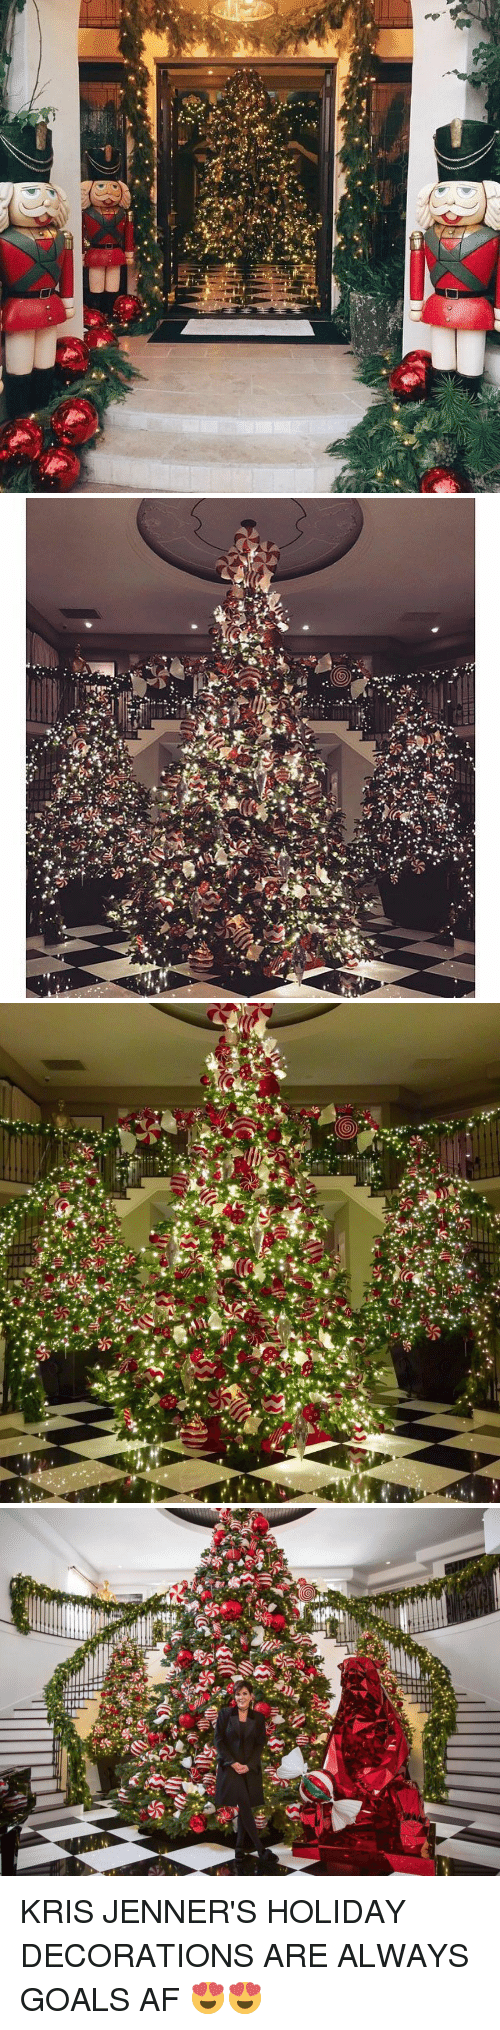 Kris Jenner, Xxx, and Decoration: y;  v:  r  7   --(A 앙  券/  e-str?  of  d  4yC..*   NO  等,   IUU  泰.  84 KRIS JENNER'S HOLIDAY DECORATIONS ARE ALWAYS GOALS AF 😍😍